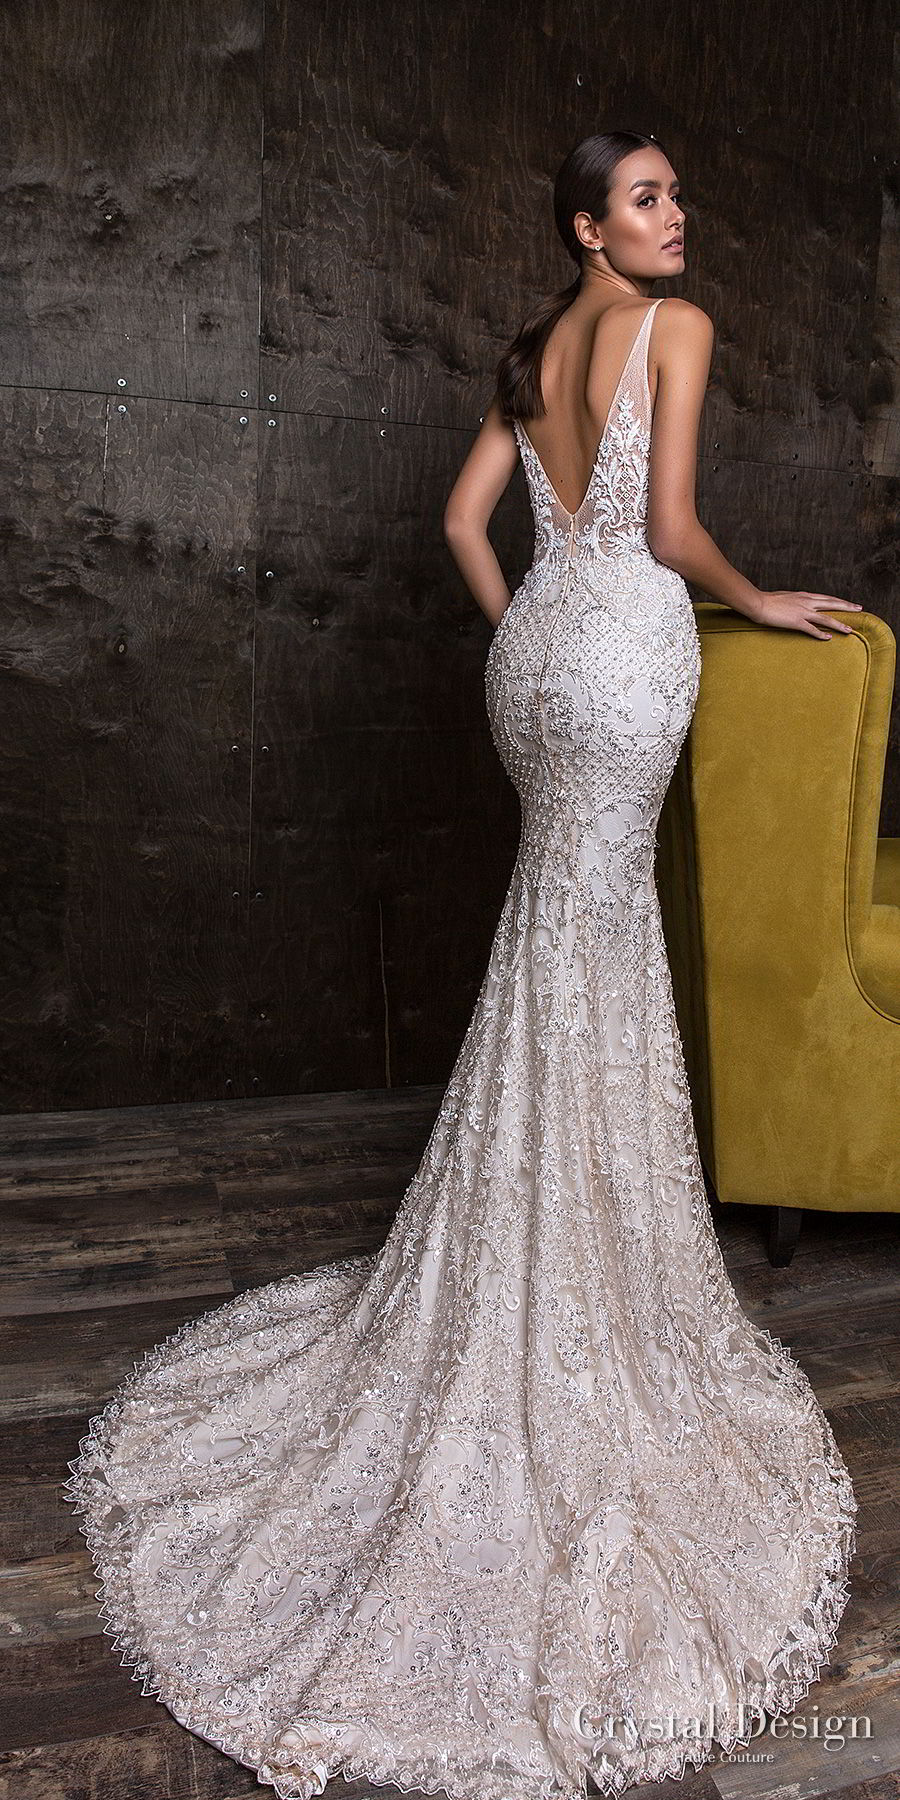 crystal design 2018 sleeveless deep v neck full embellishment ...